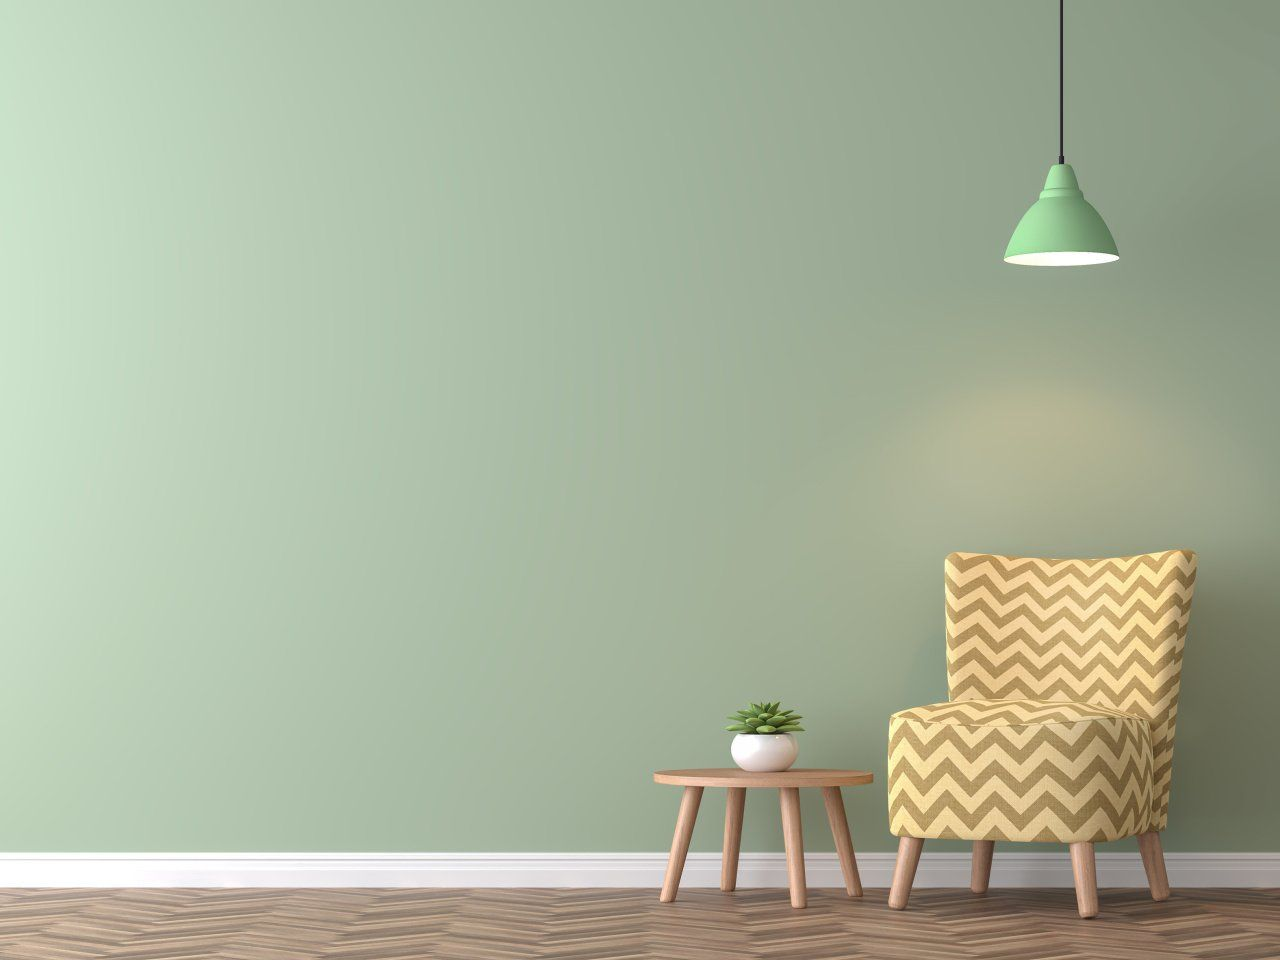 How To Use The Color Green For Interior Decorating With Images